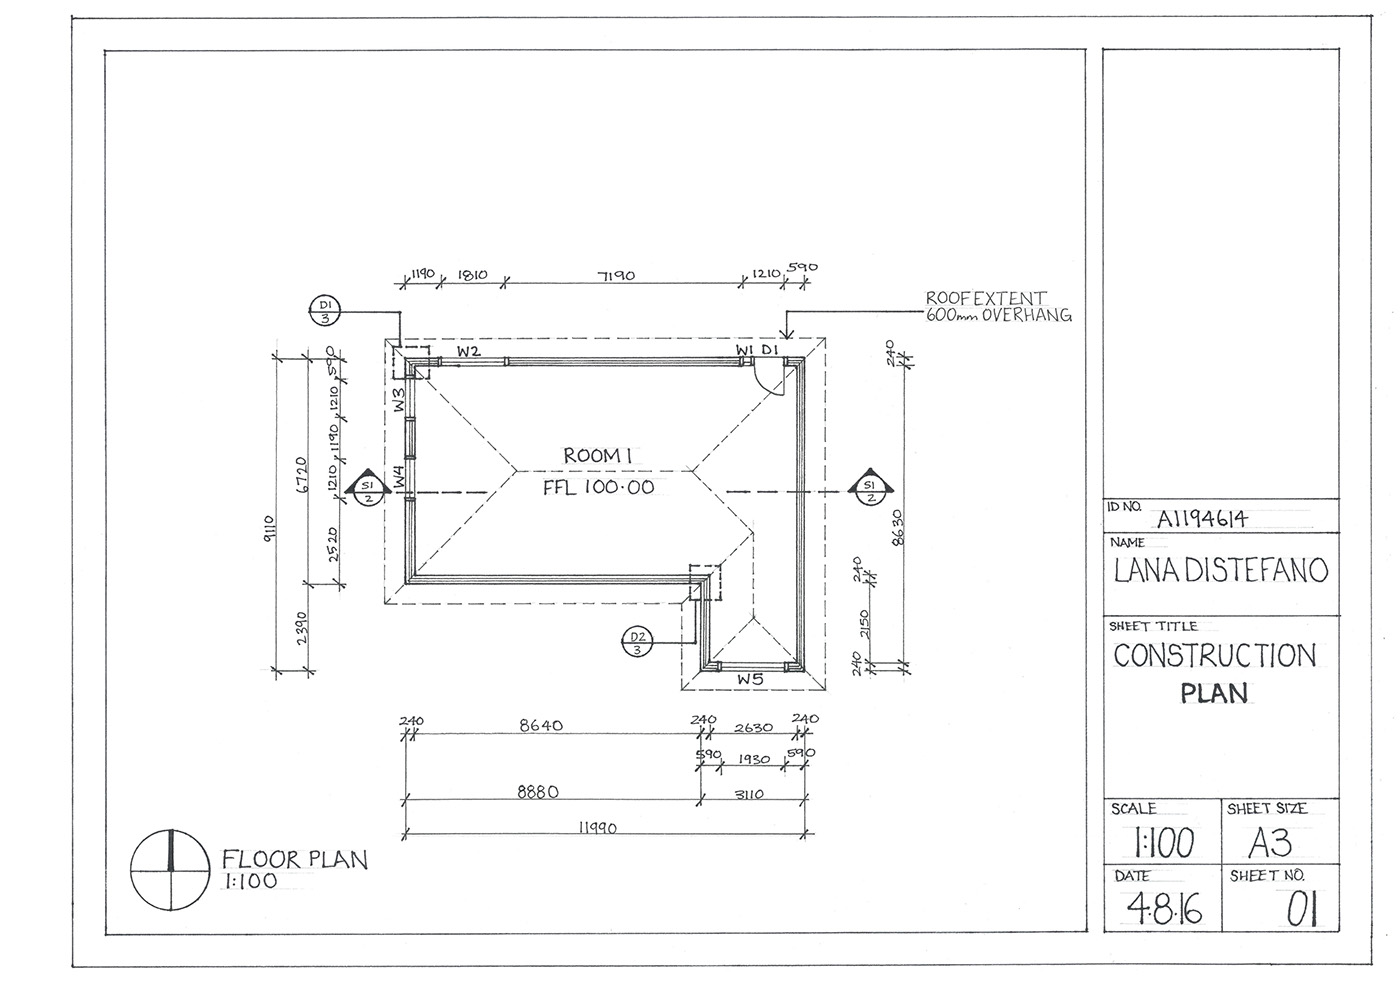 Hand drawn construction drawings on behance for Construction plan drawing